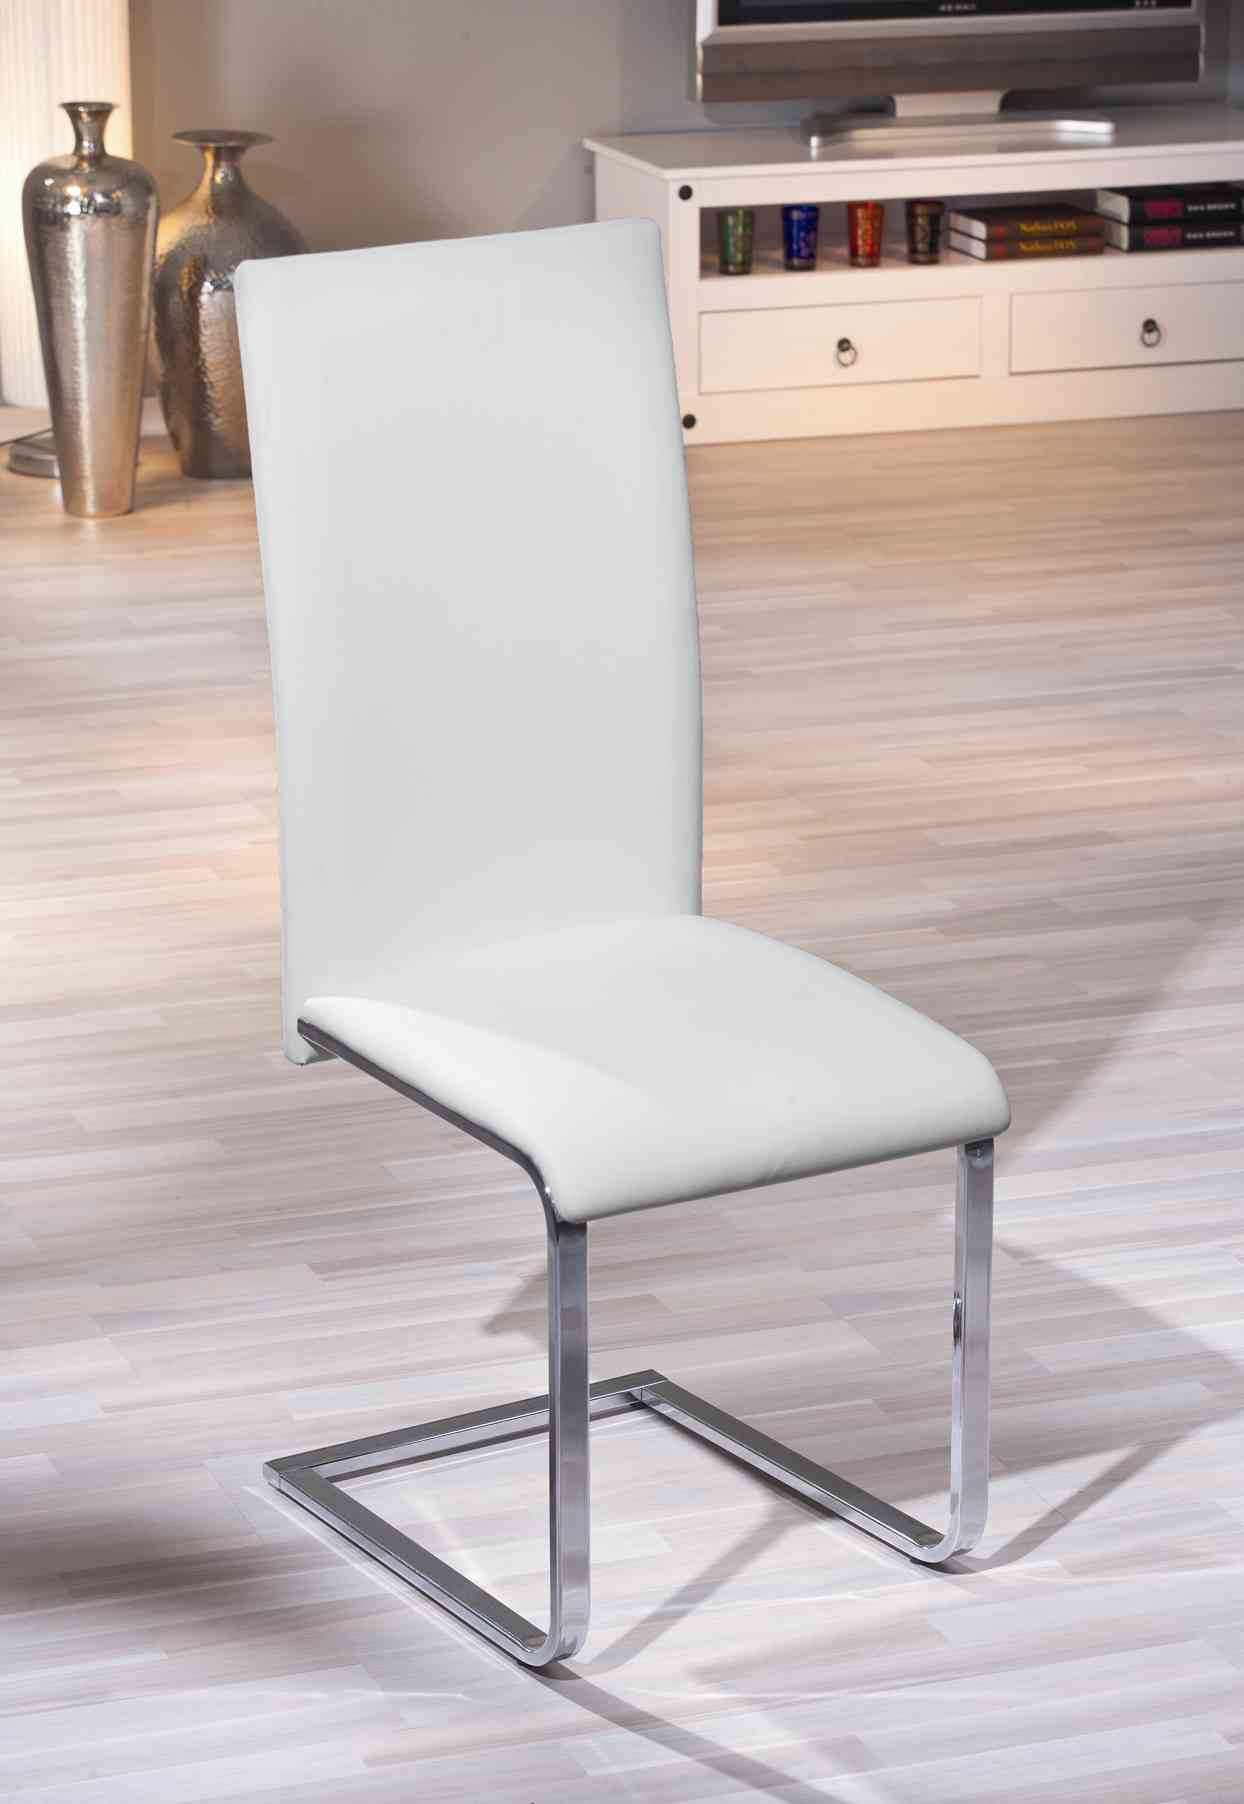 Chaises blanches design salle manger id es de d coration for Une salle a manger in french